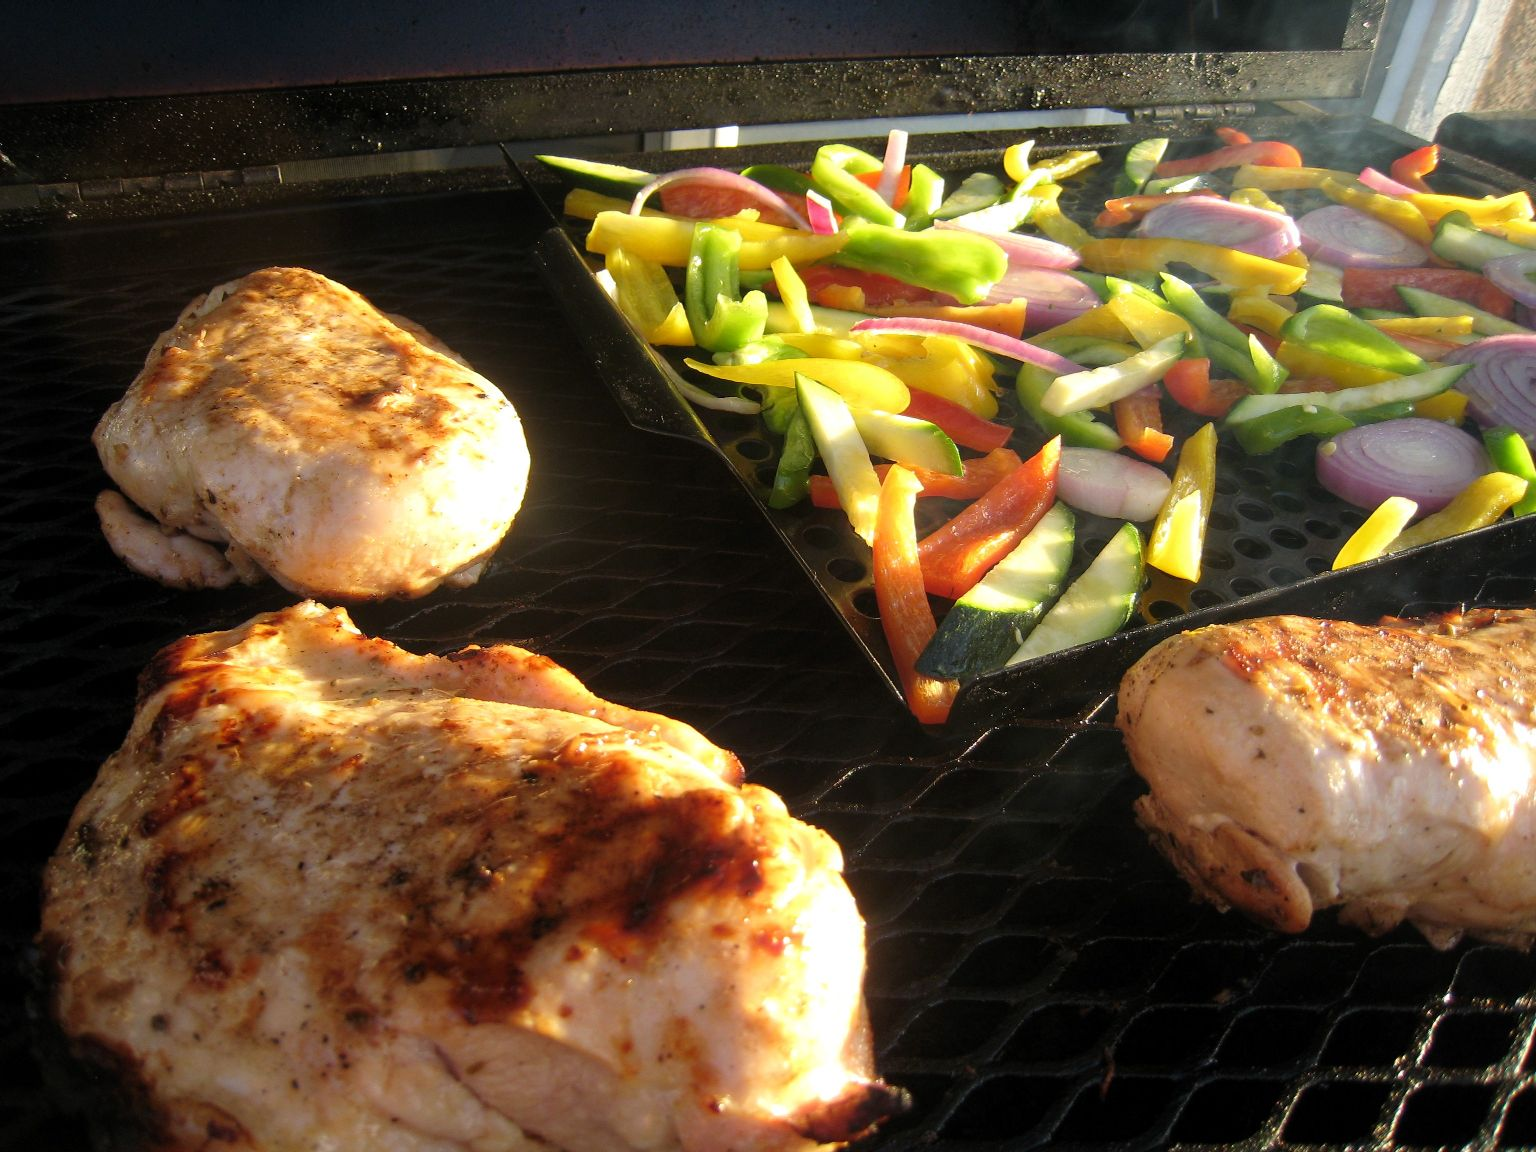 A close up of chicken and vegetables on a grill